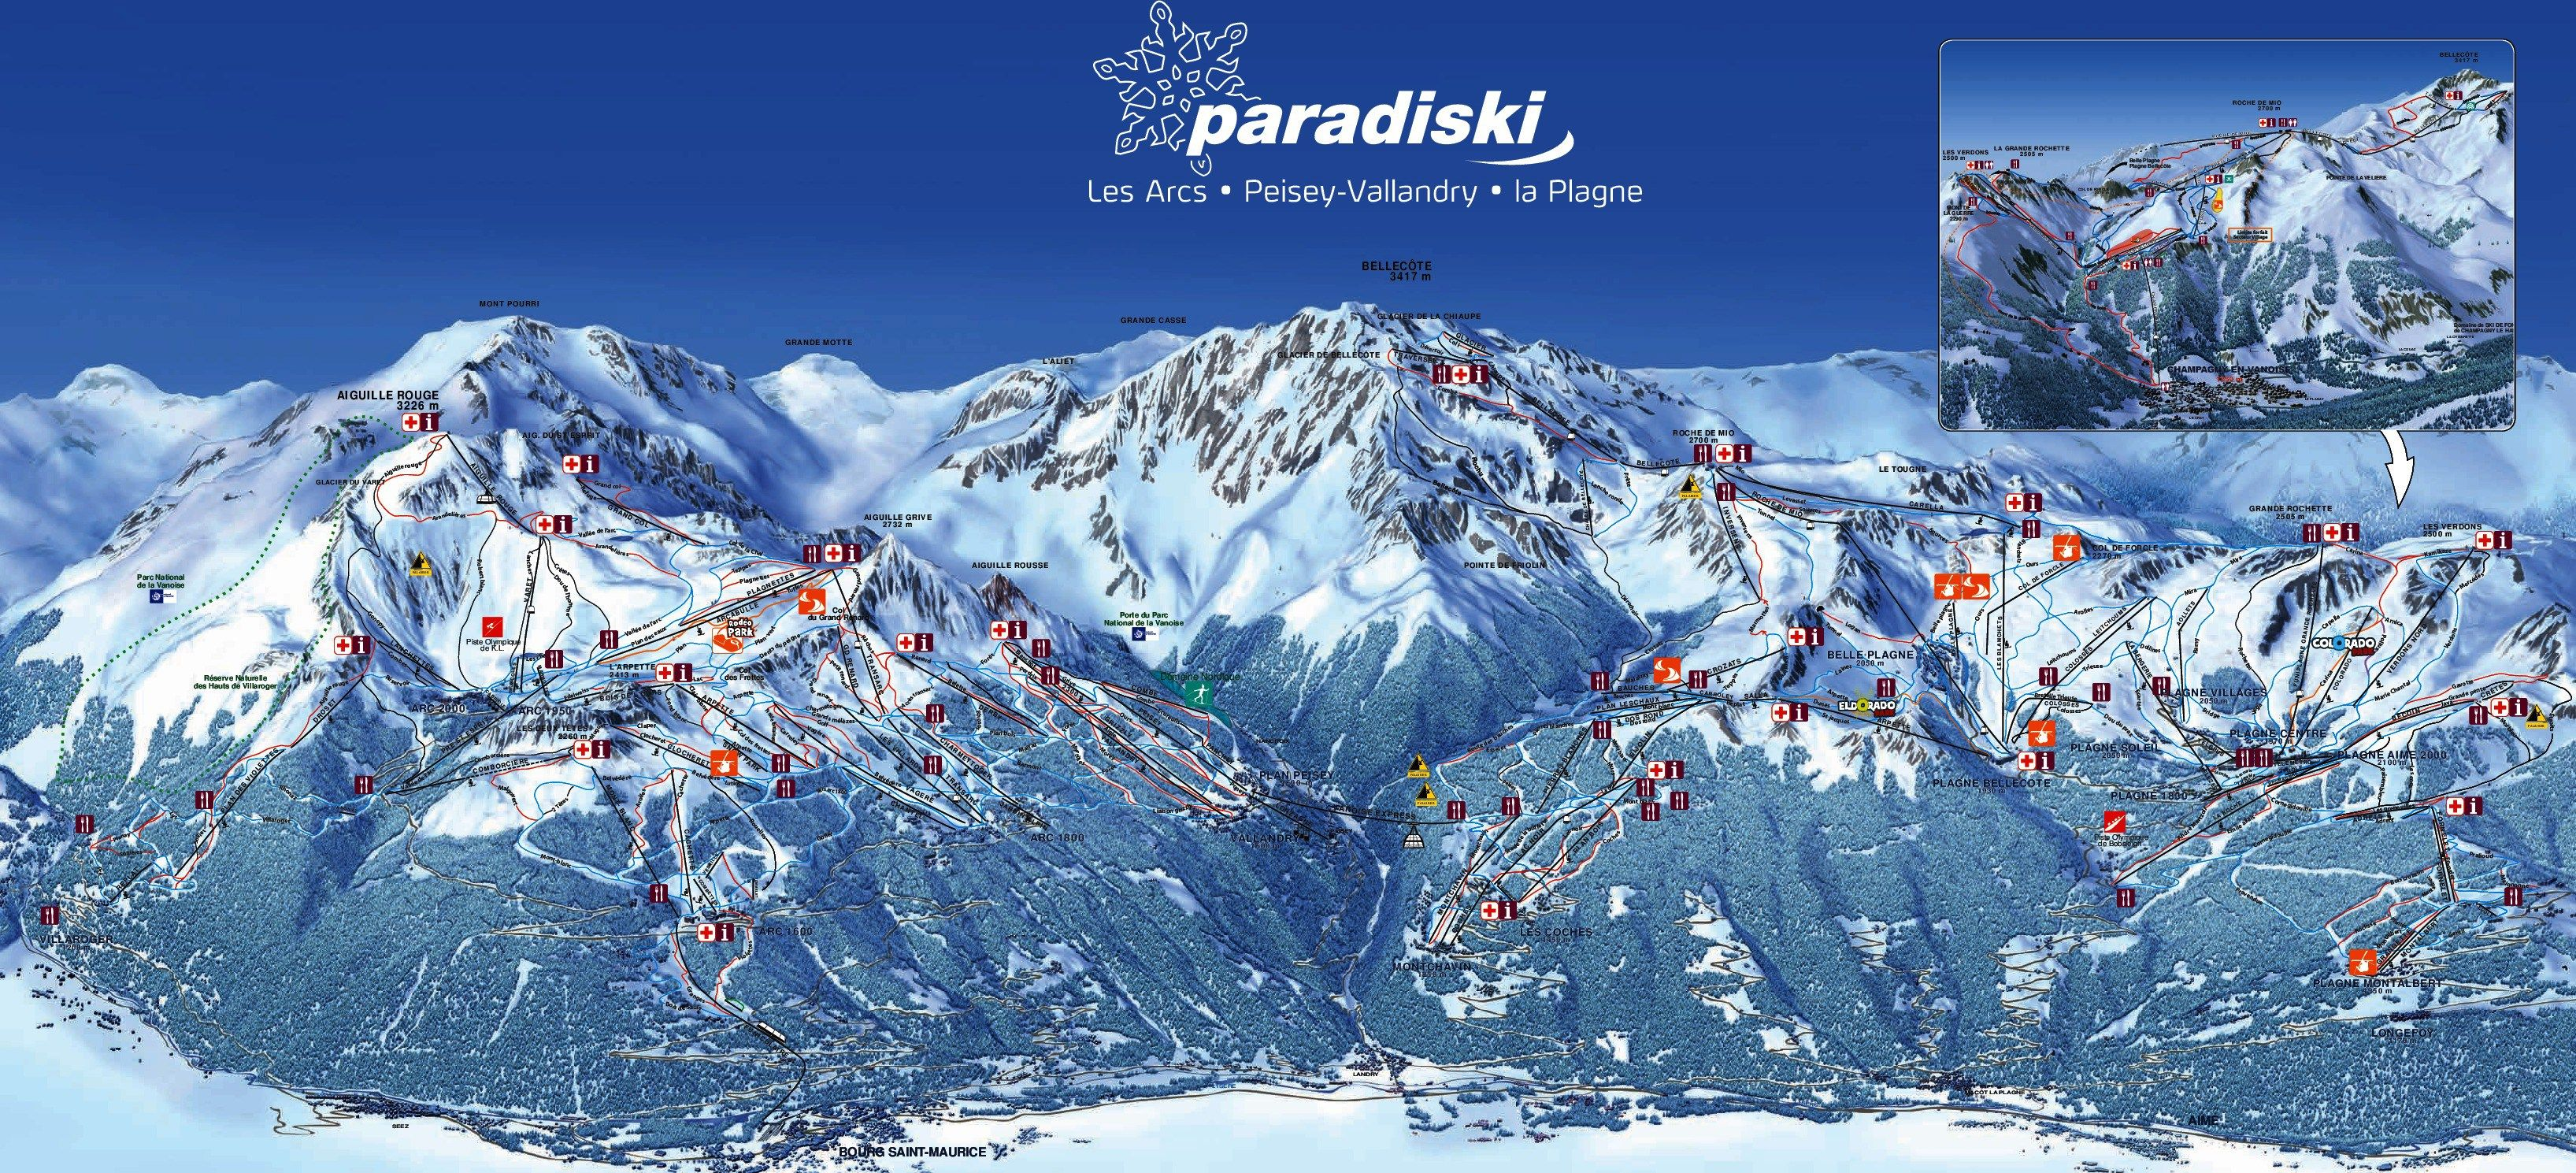 Piste Map of Paradiski on the French Alps Les Arcs Paisey